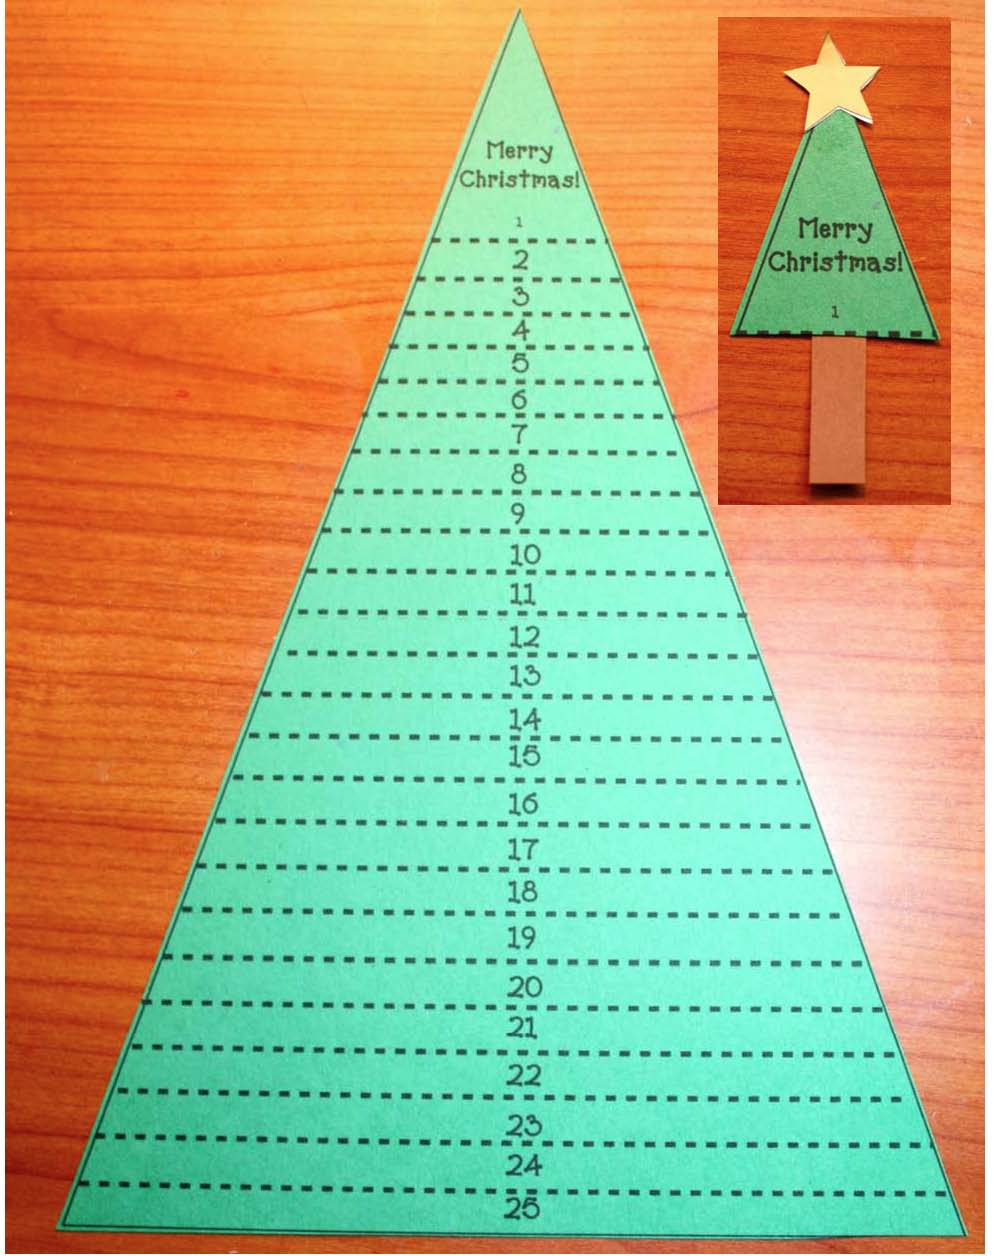 christmas activities, counting backwards activities, christmas crafts, countingdown to christmas activities, elf crafts, elf activities, christmas tree crafts,